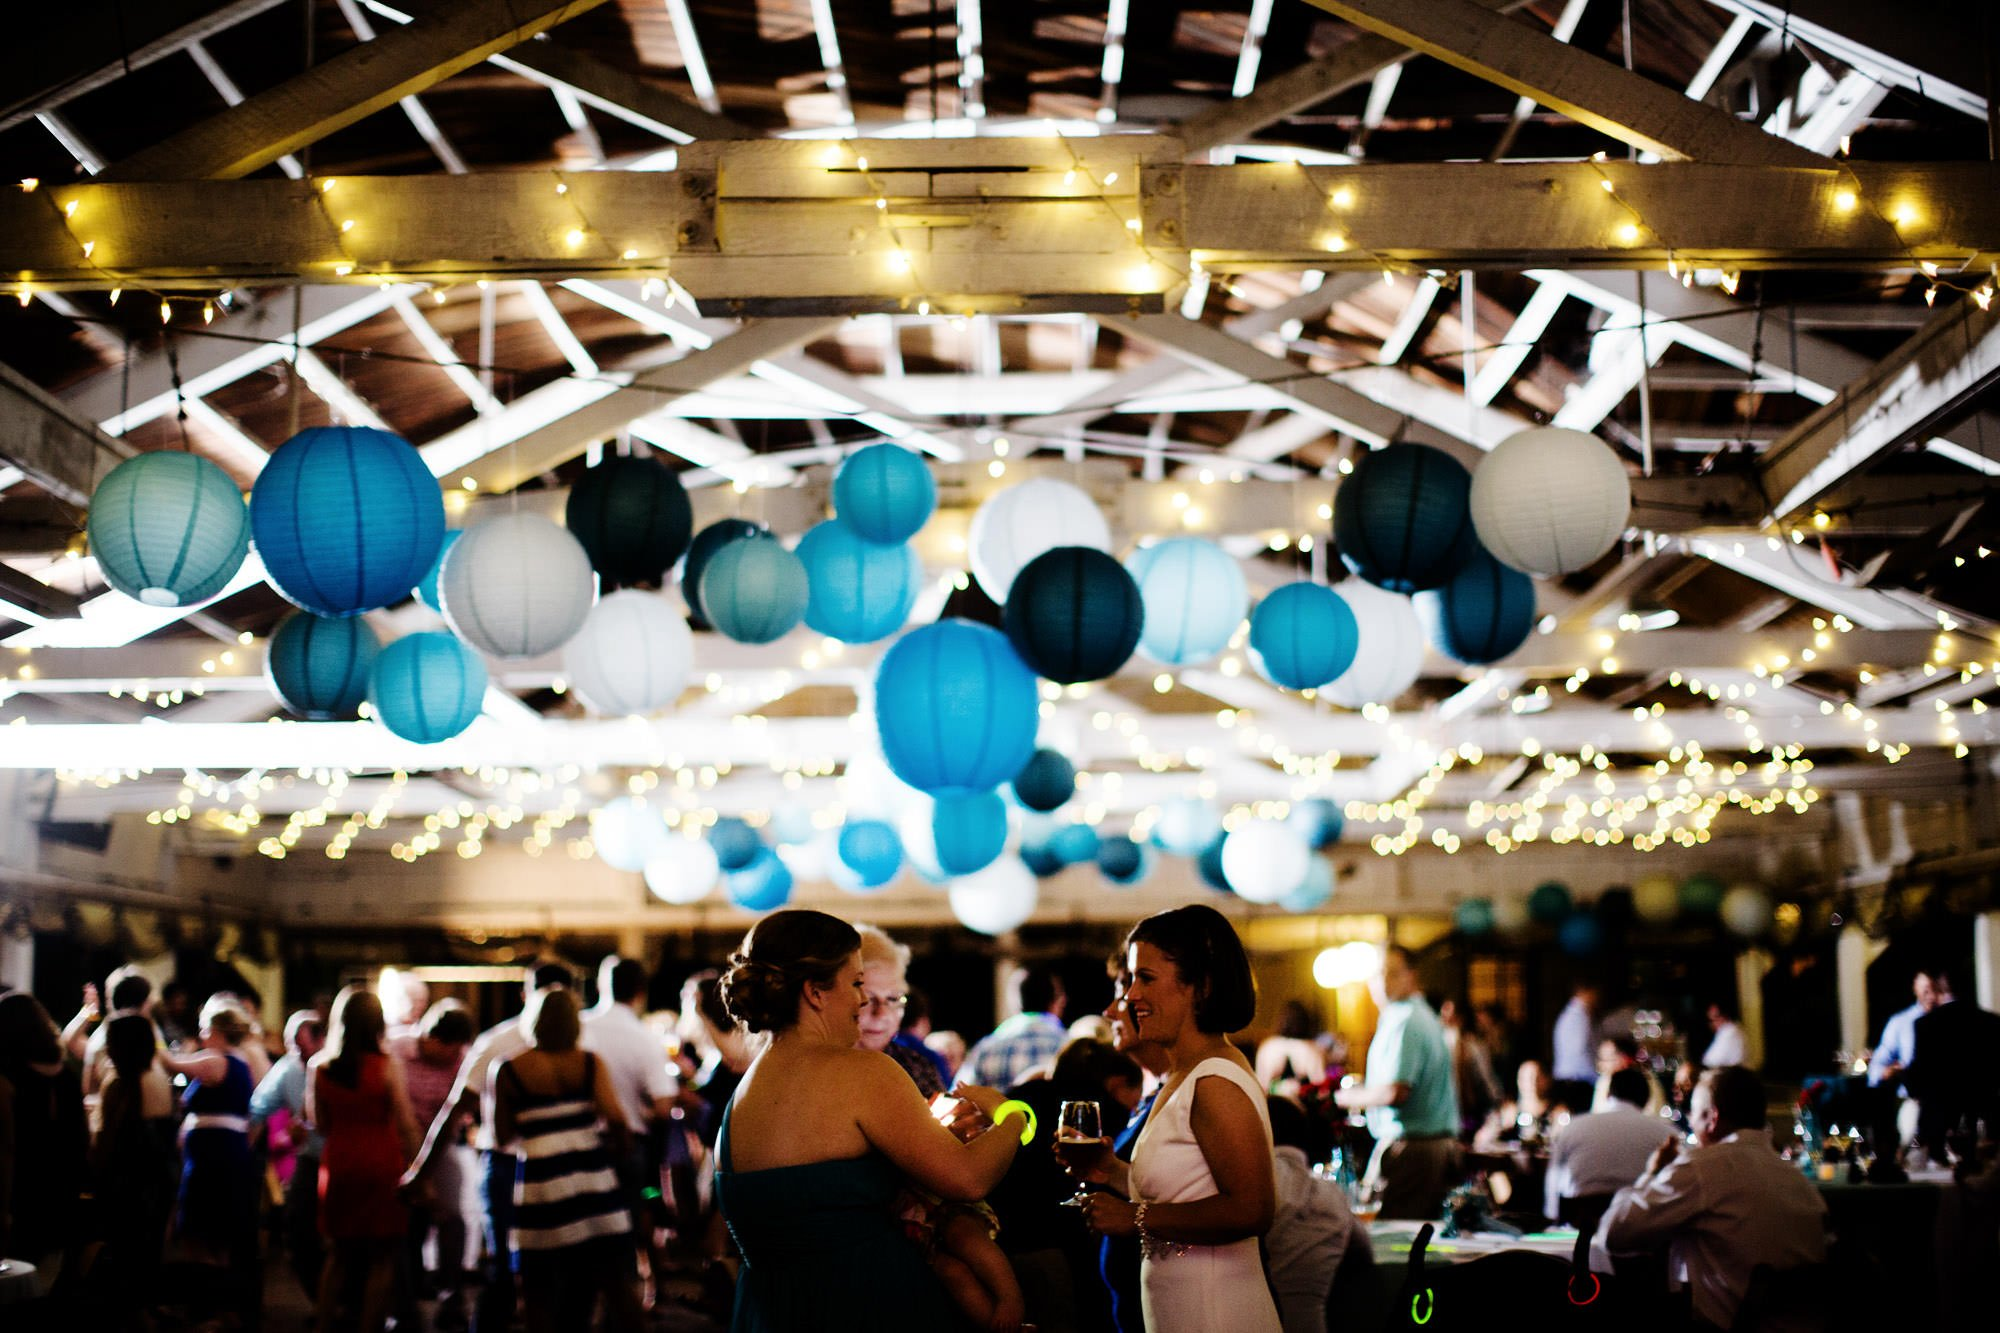 Guests enjoy the wedding reception at the Bumper Car Pavilion in Glen Echo Park.